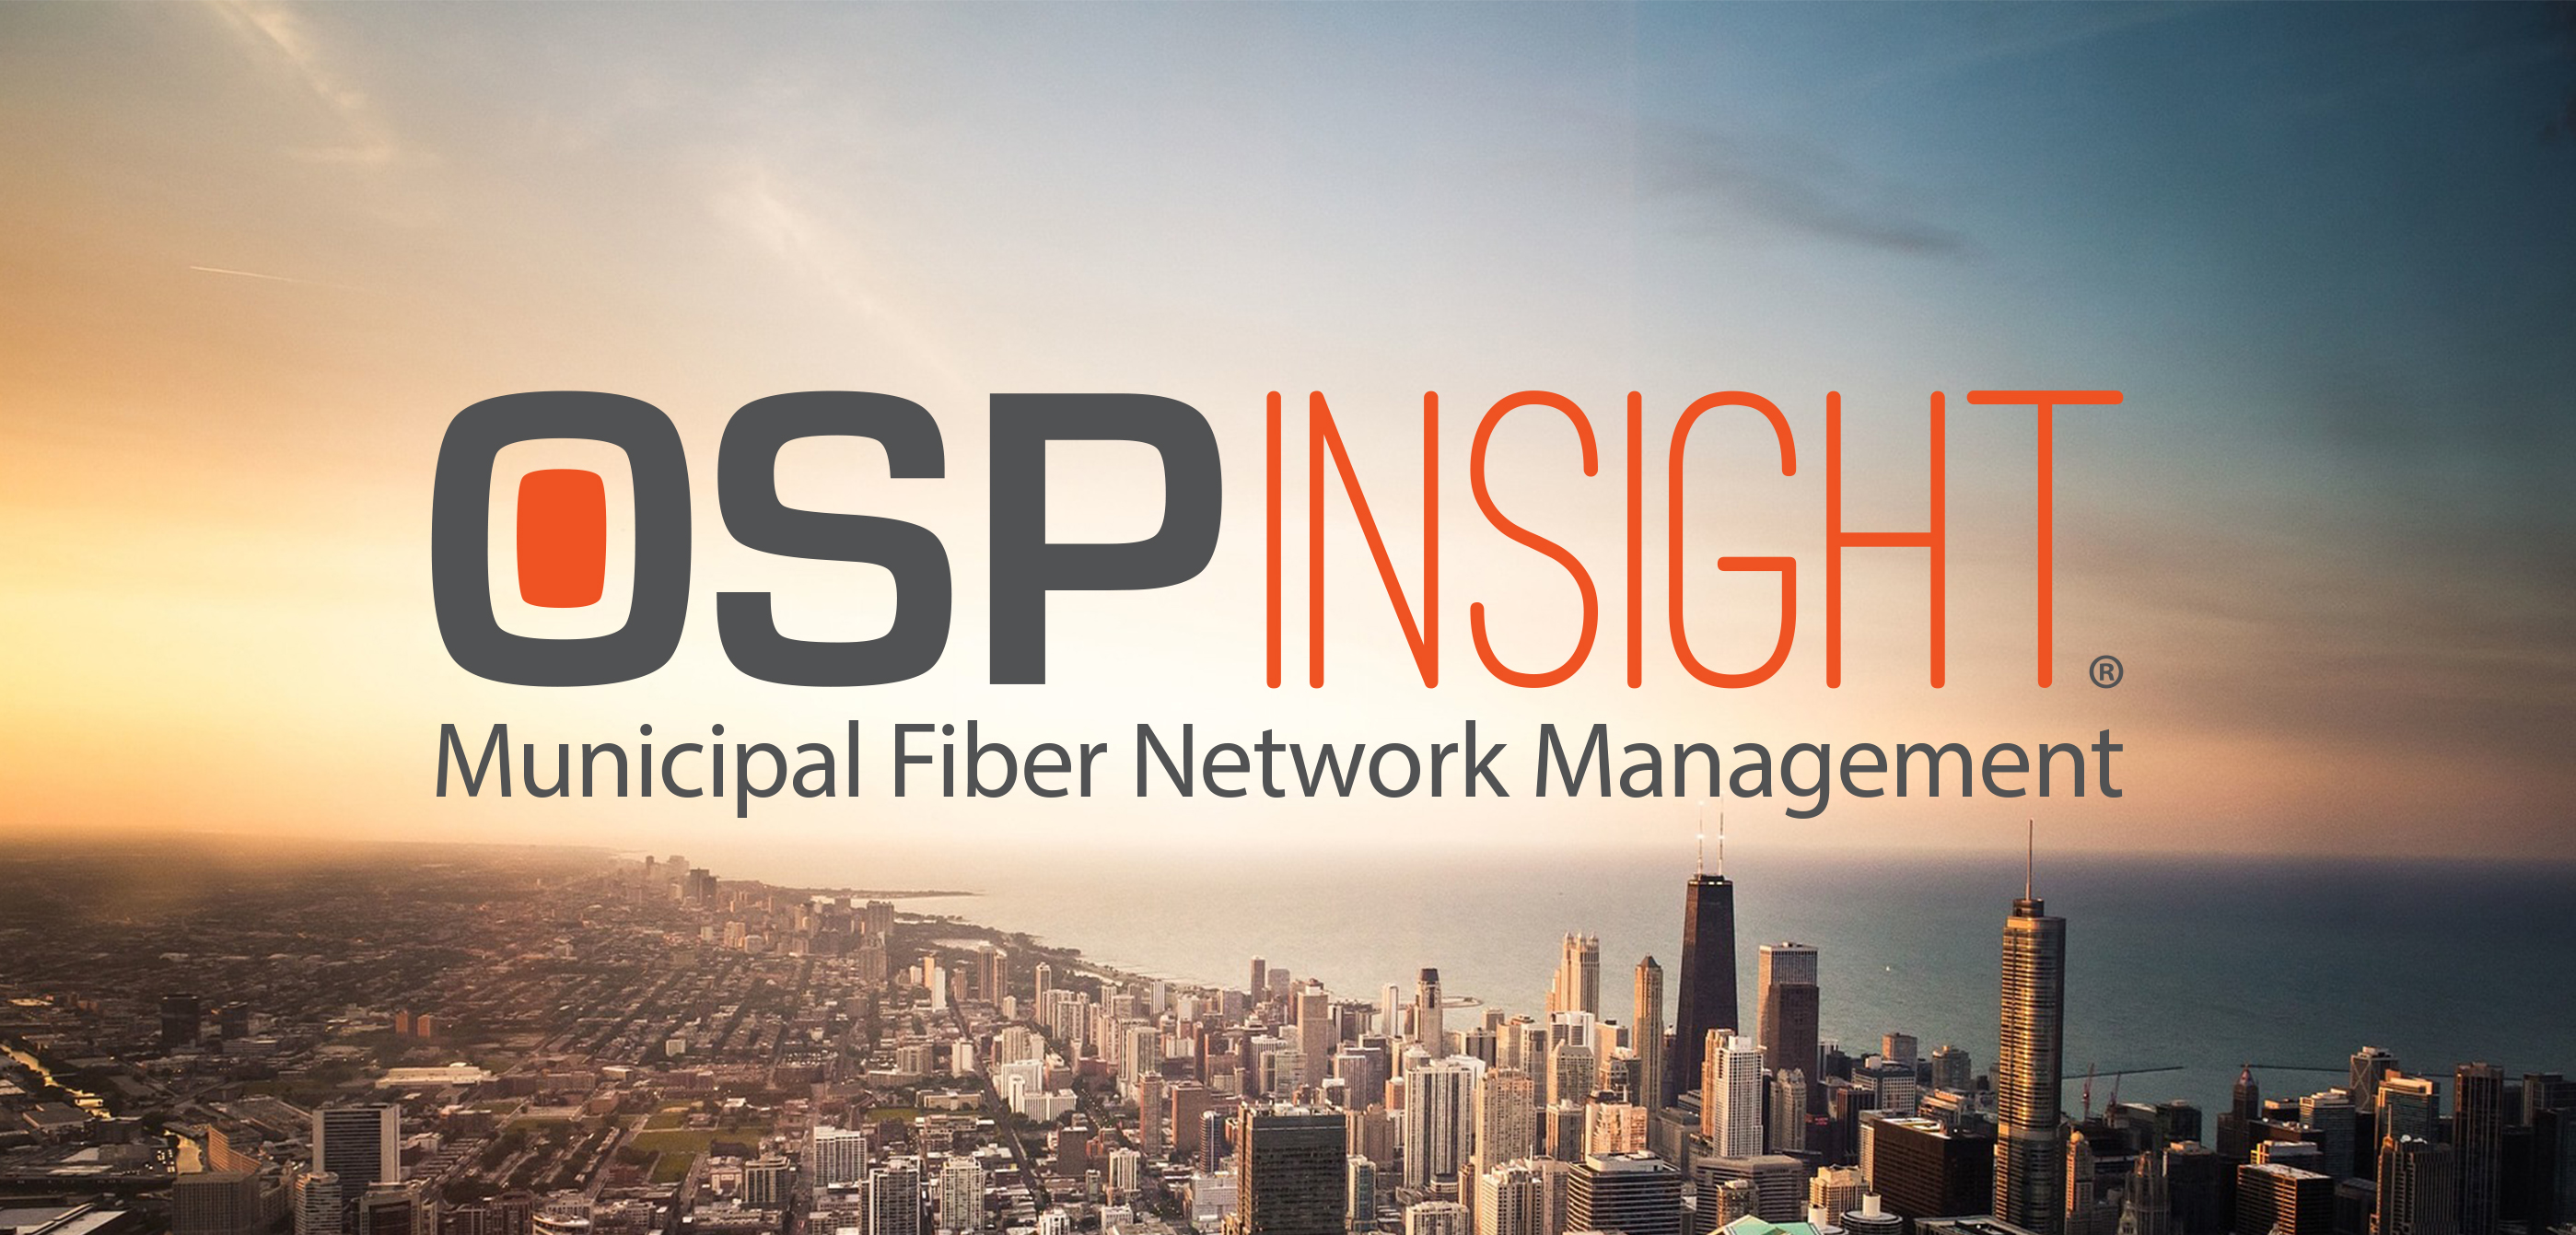 Manage Municipal Fiber Networks With OSPInsight